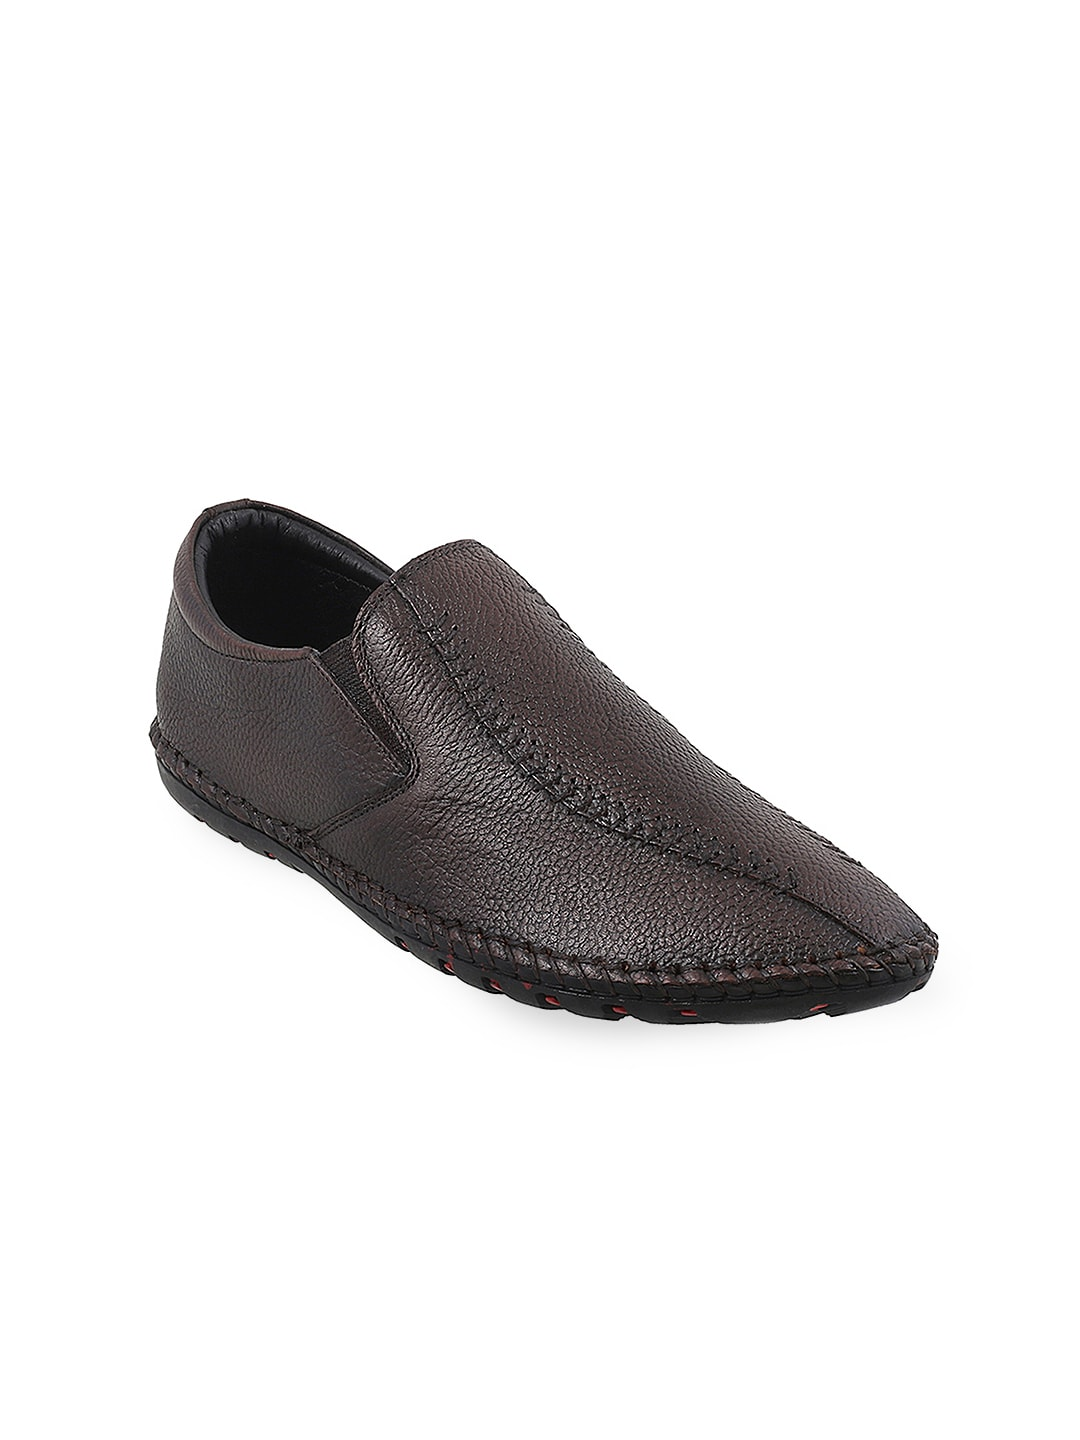 Metro Men Brown Textured Leather Slip-Ons image